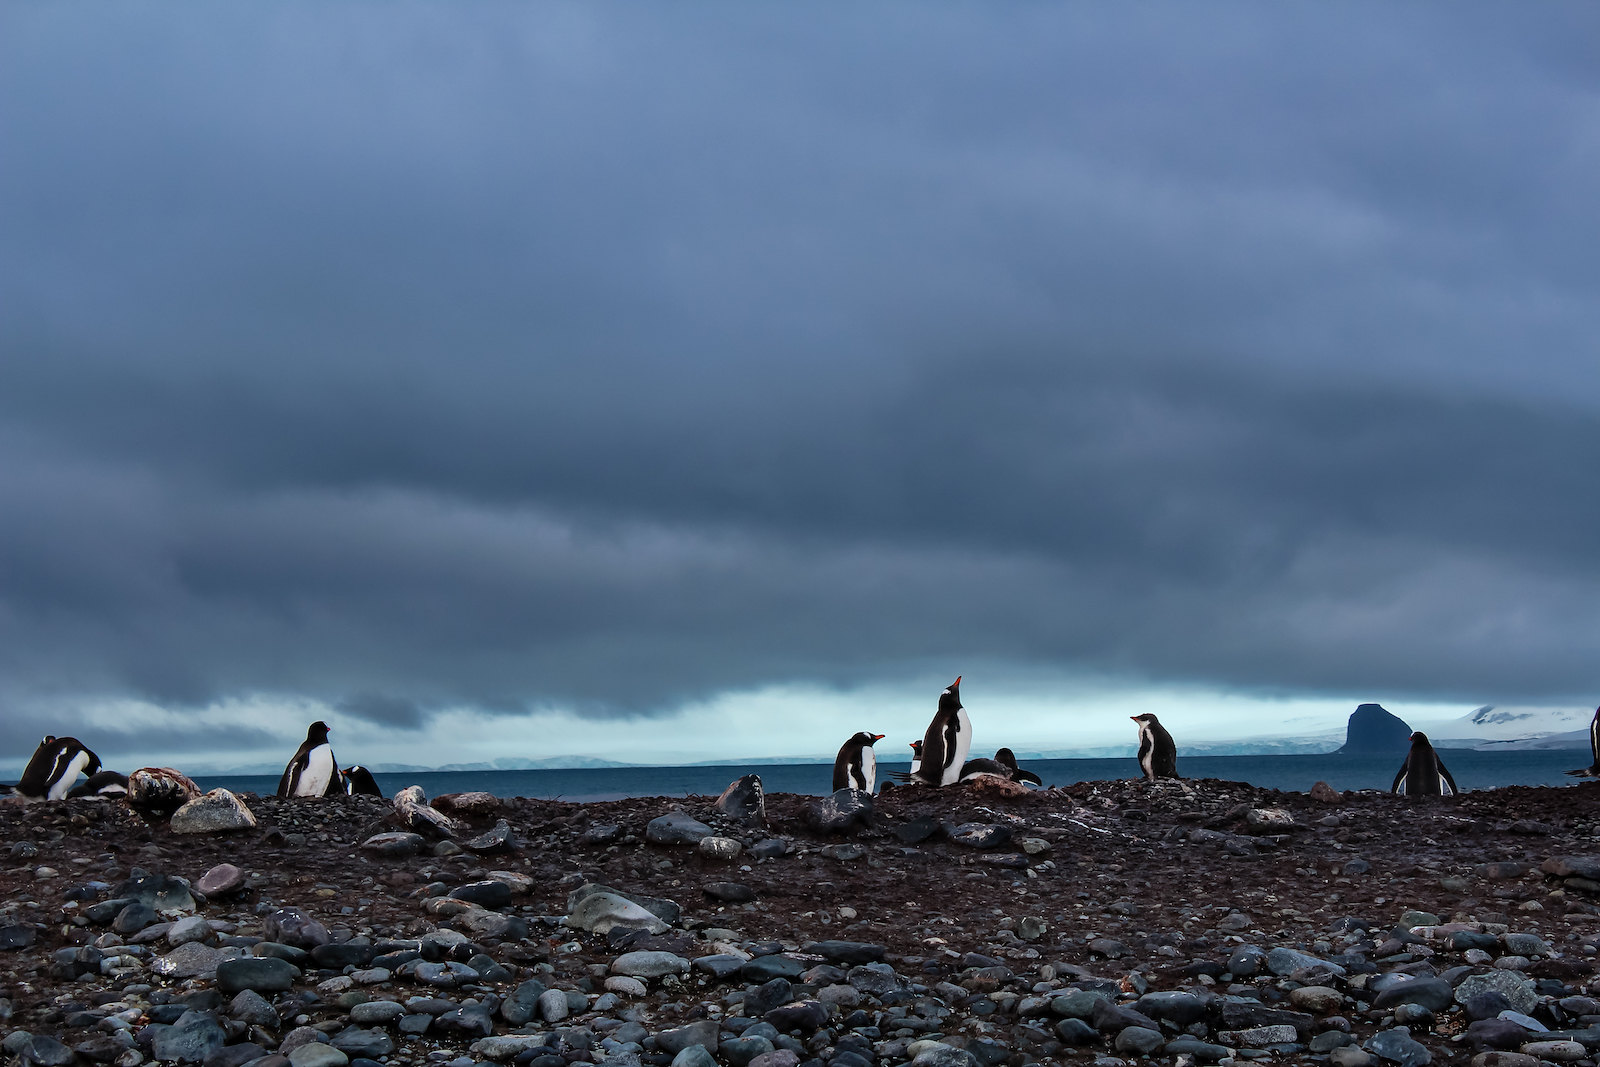 Stormy skies and penguins